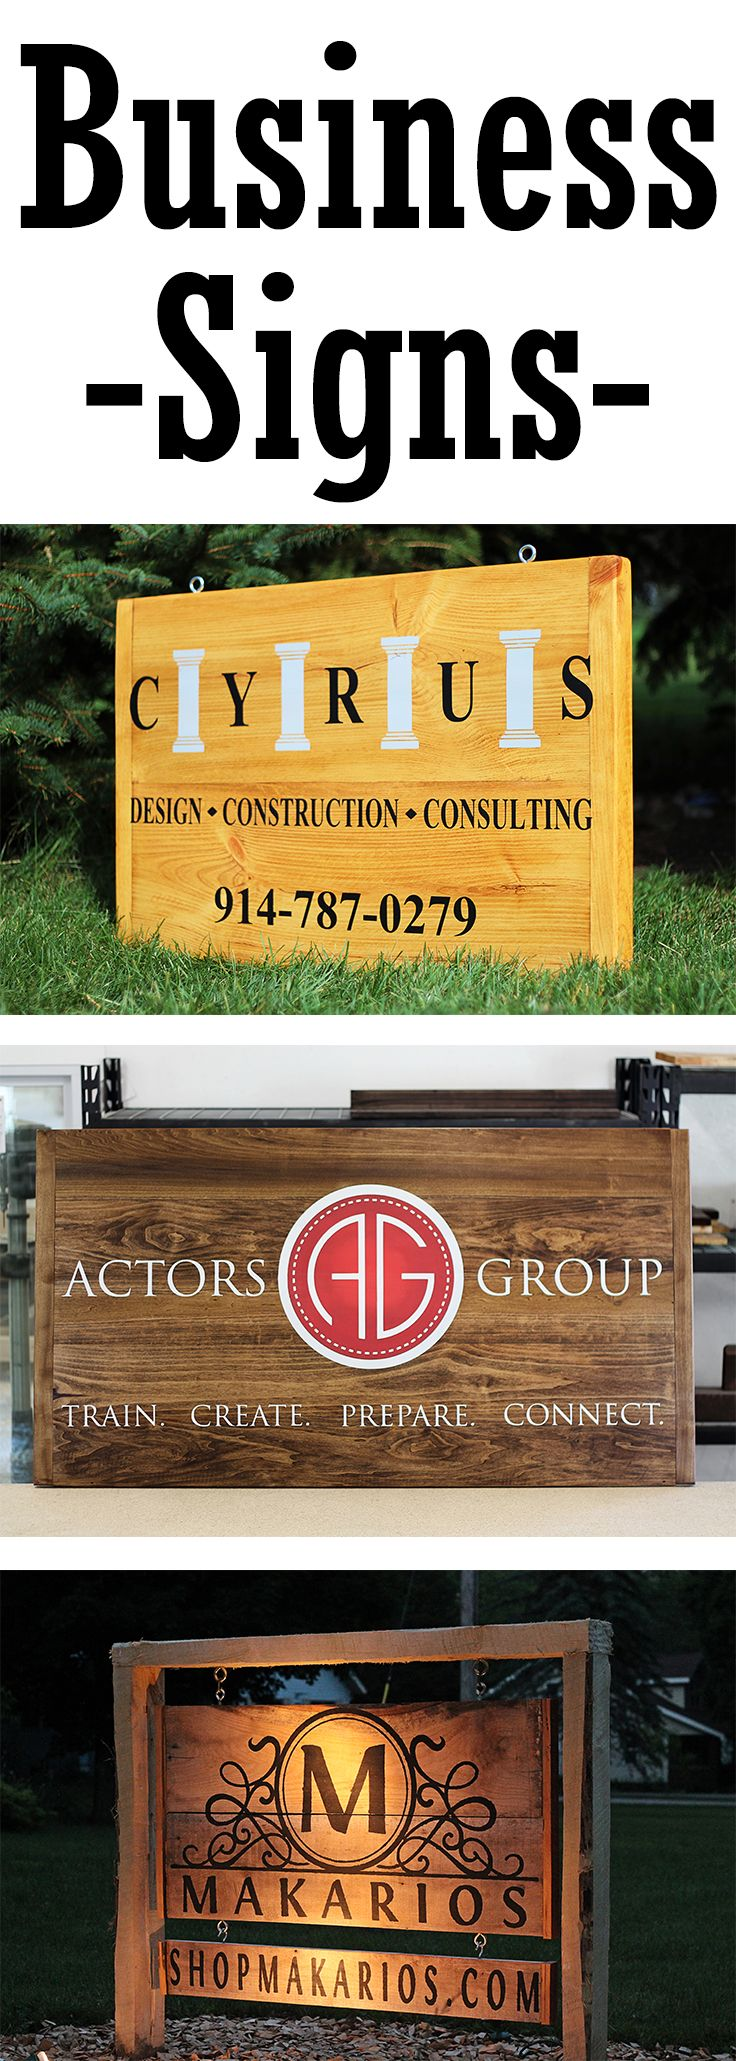 Business Signs Custom Sign Outdoor Hanging Personalized For My With Logo